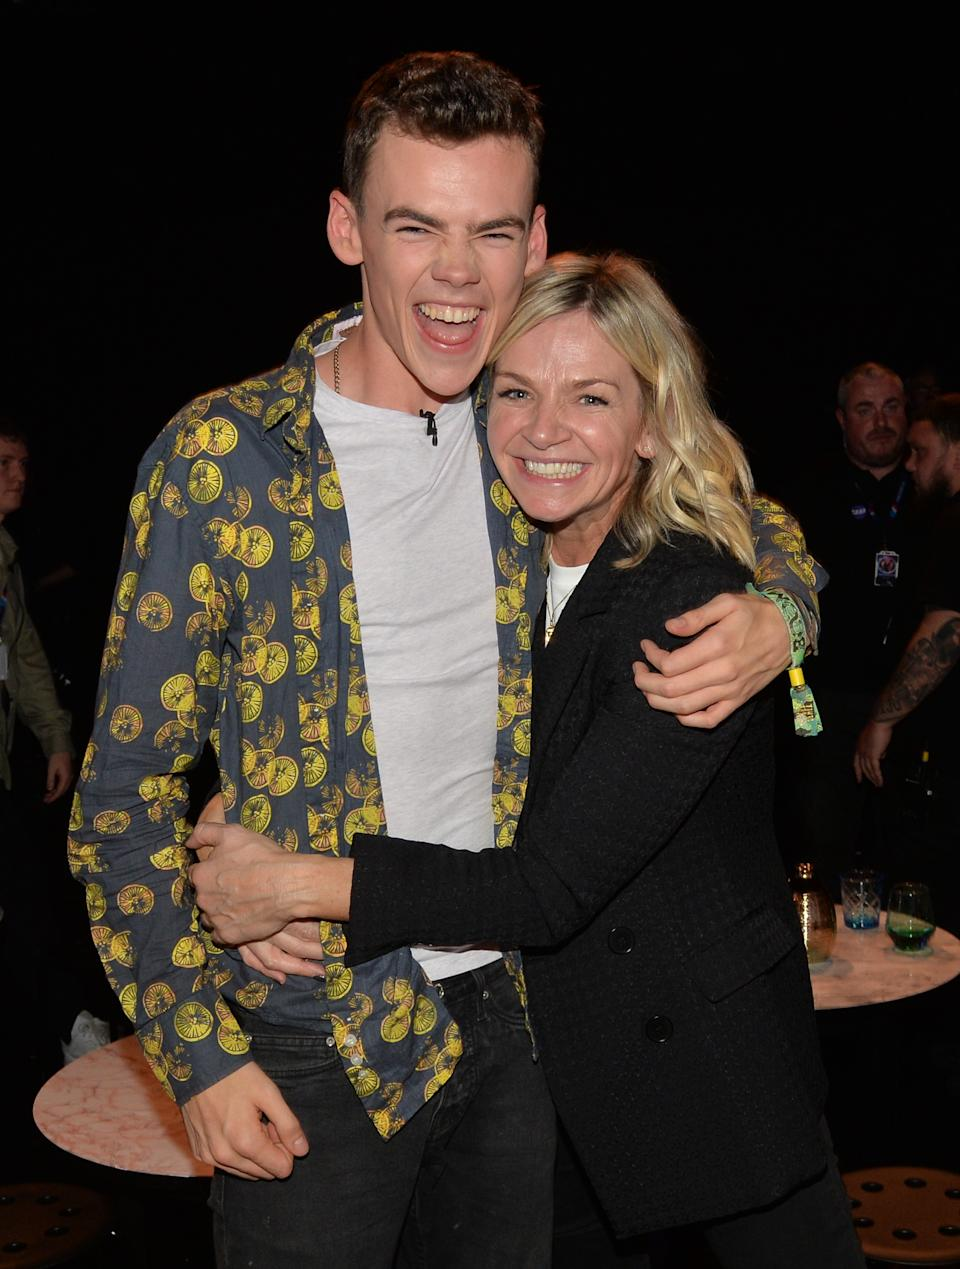 Finalist Woody Cook with his mother, Zoe Ball, following the live final of the second series of Channel 4's The Circle, in Salford, Manchester. (Photo by Peter Powell/PA Images via Getty Images)